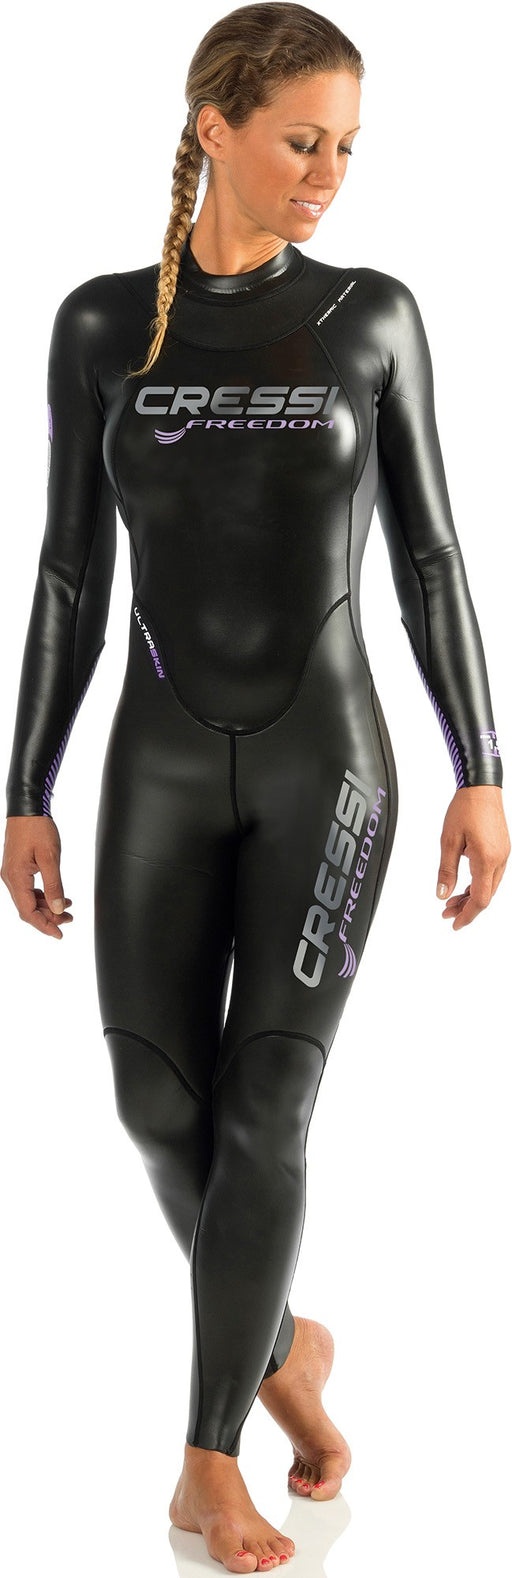 Cressi FREEDOM ALL-IN-ONE LADY - 1.5mm Wetsuit / Purple / Black / M